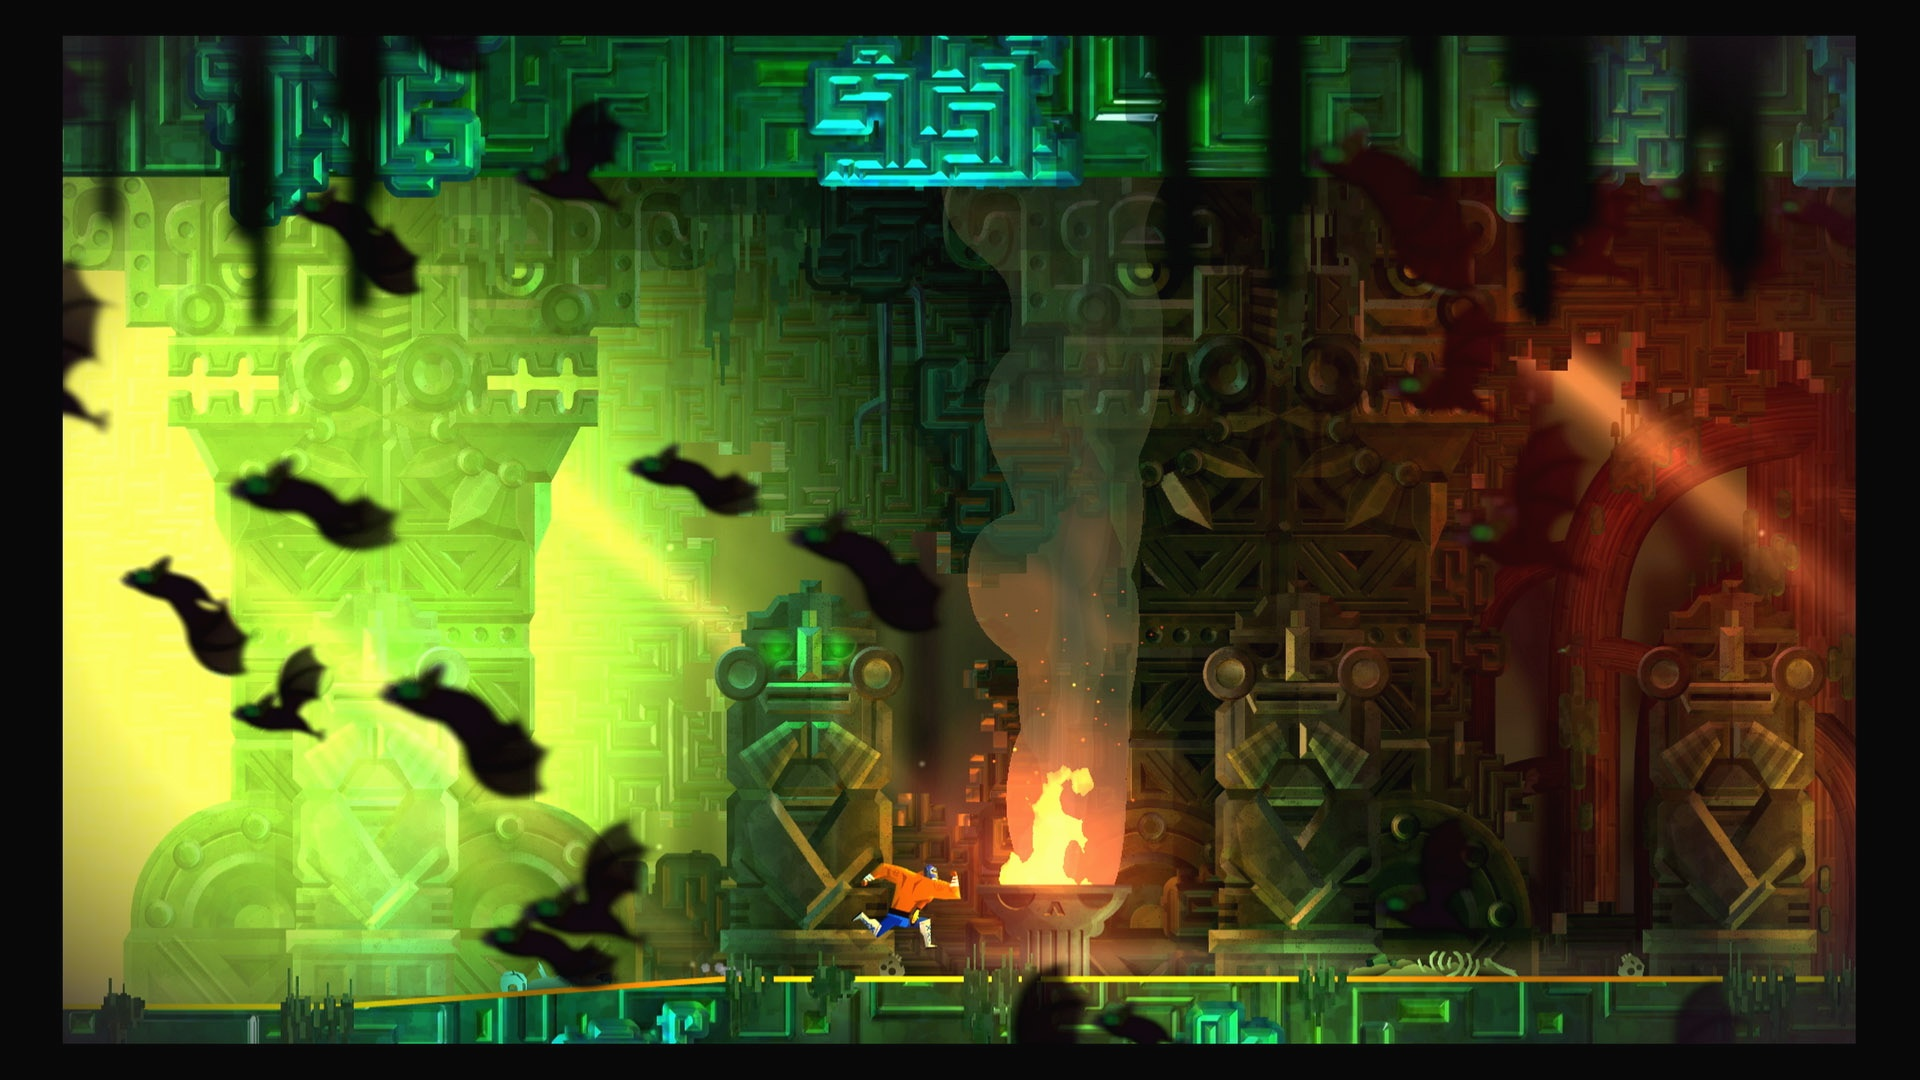 Guacamelee 2 Complete Edition Review, Guacamelee 2, Review, 2d, action, action & adventure, broken rules, drinkbox studios, guacamelee super turbo championship edition, guacamelee!, guacamelee! 2, nintendo switch review, open world, platformer, switch review, the proving grounds (challenge level), three enemigos character pack,